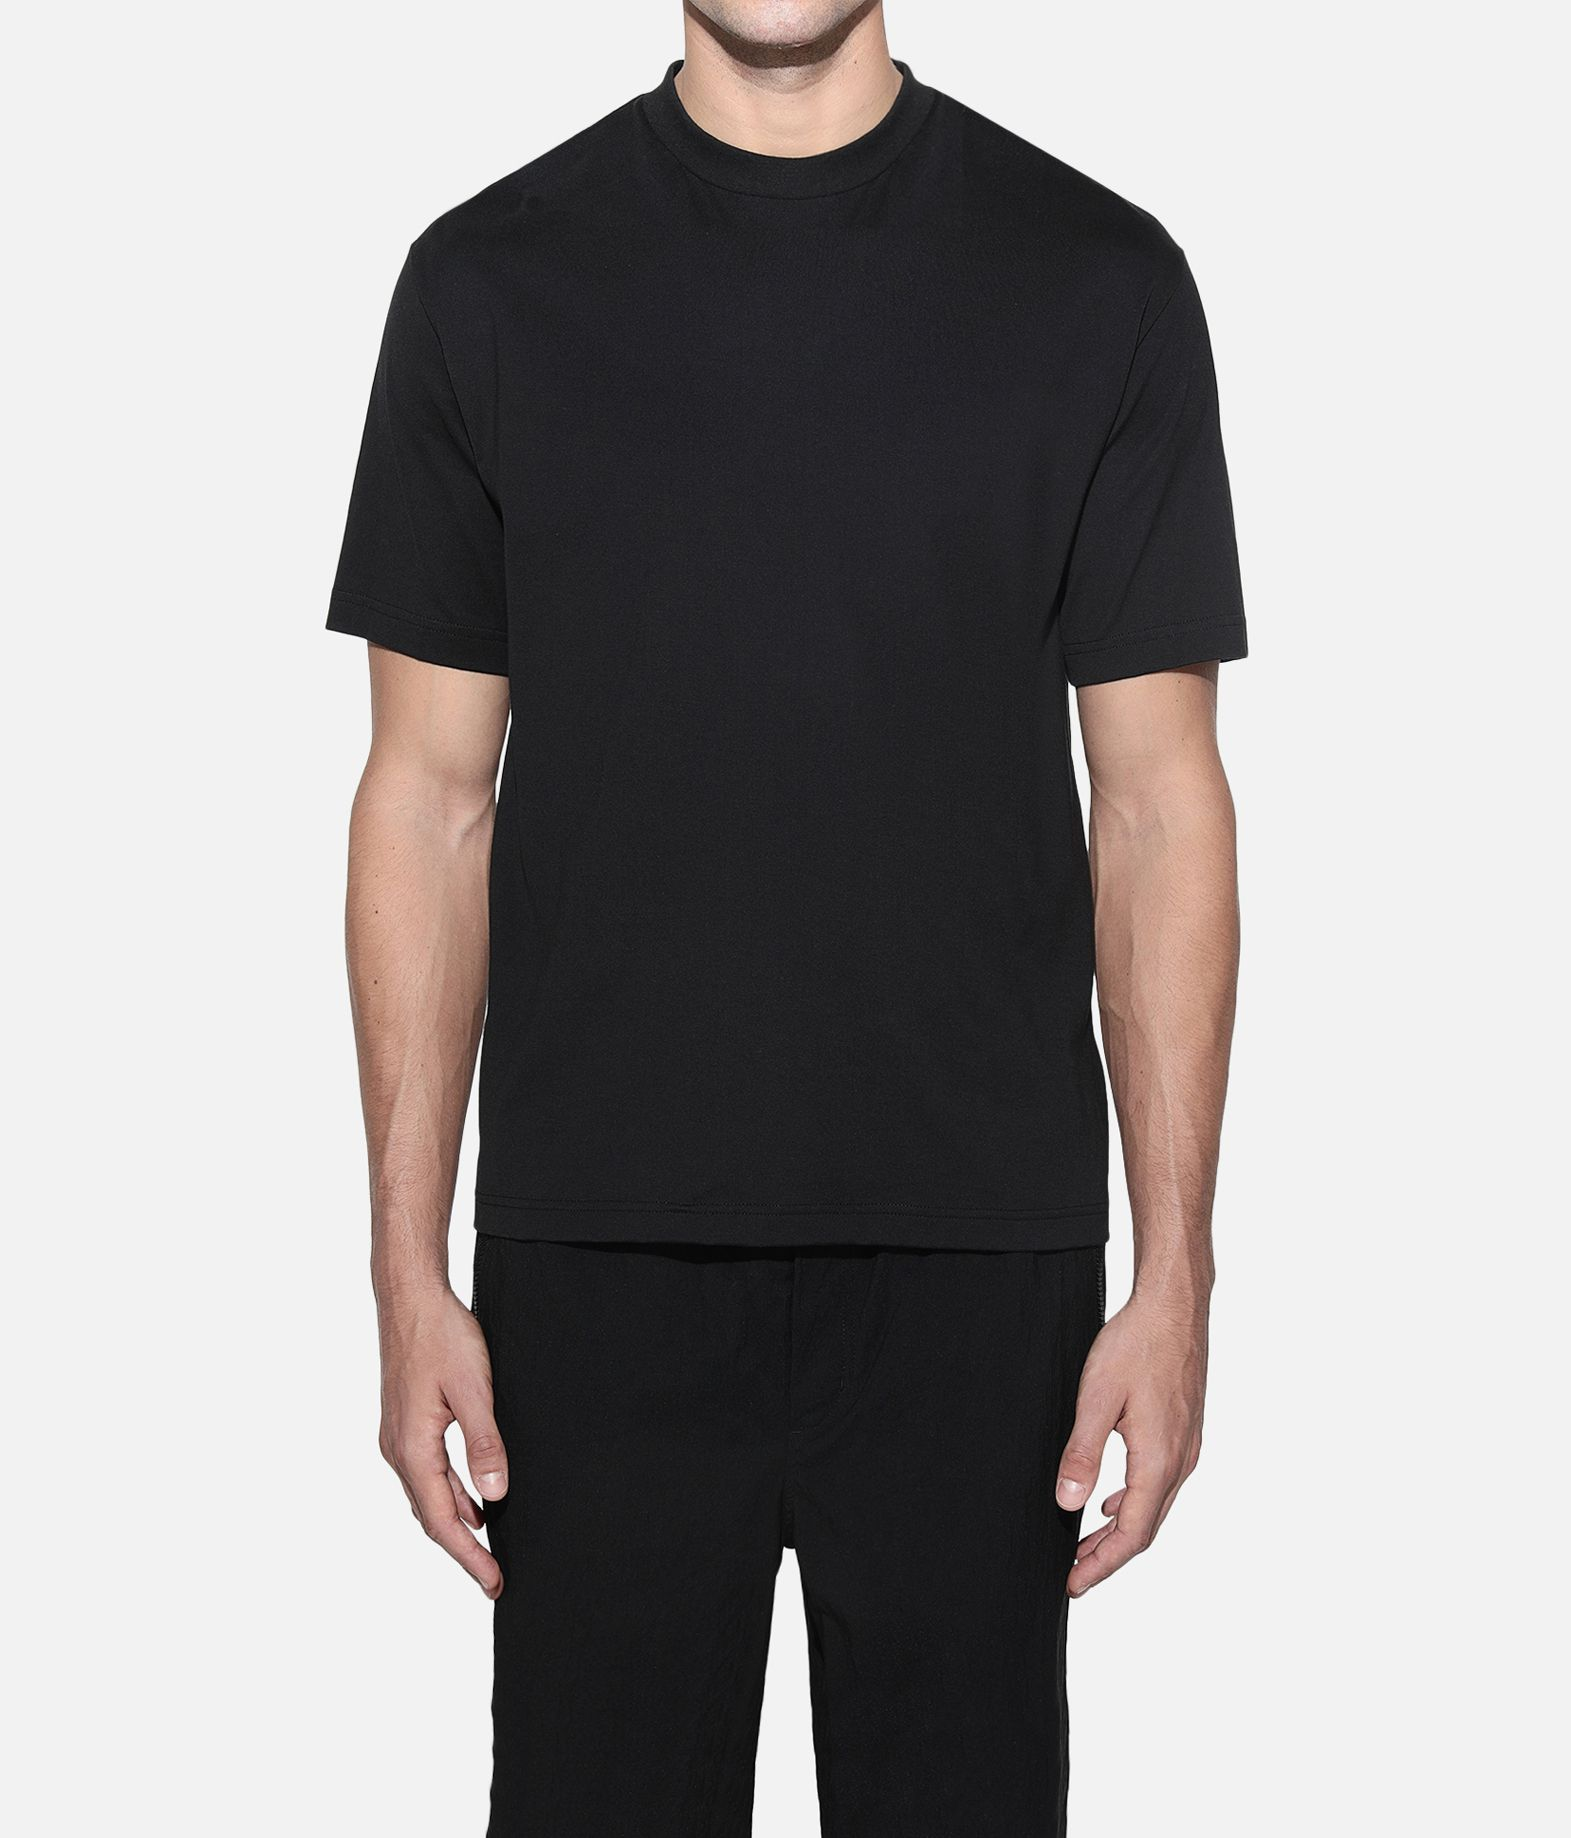 Y-3 Y-3 Signature Graphic Tee T シャツ メンズ r